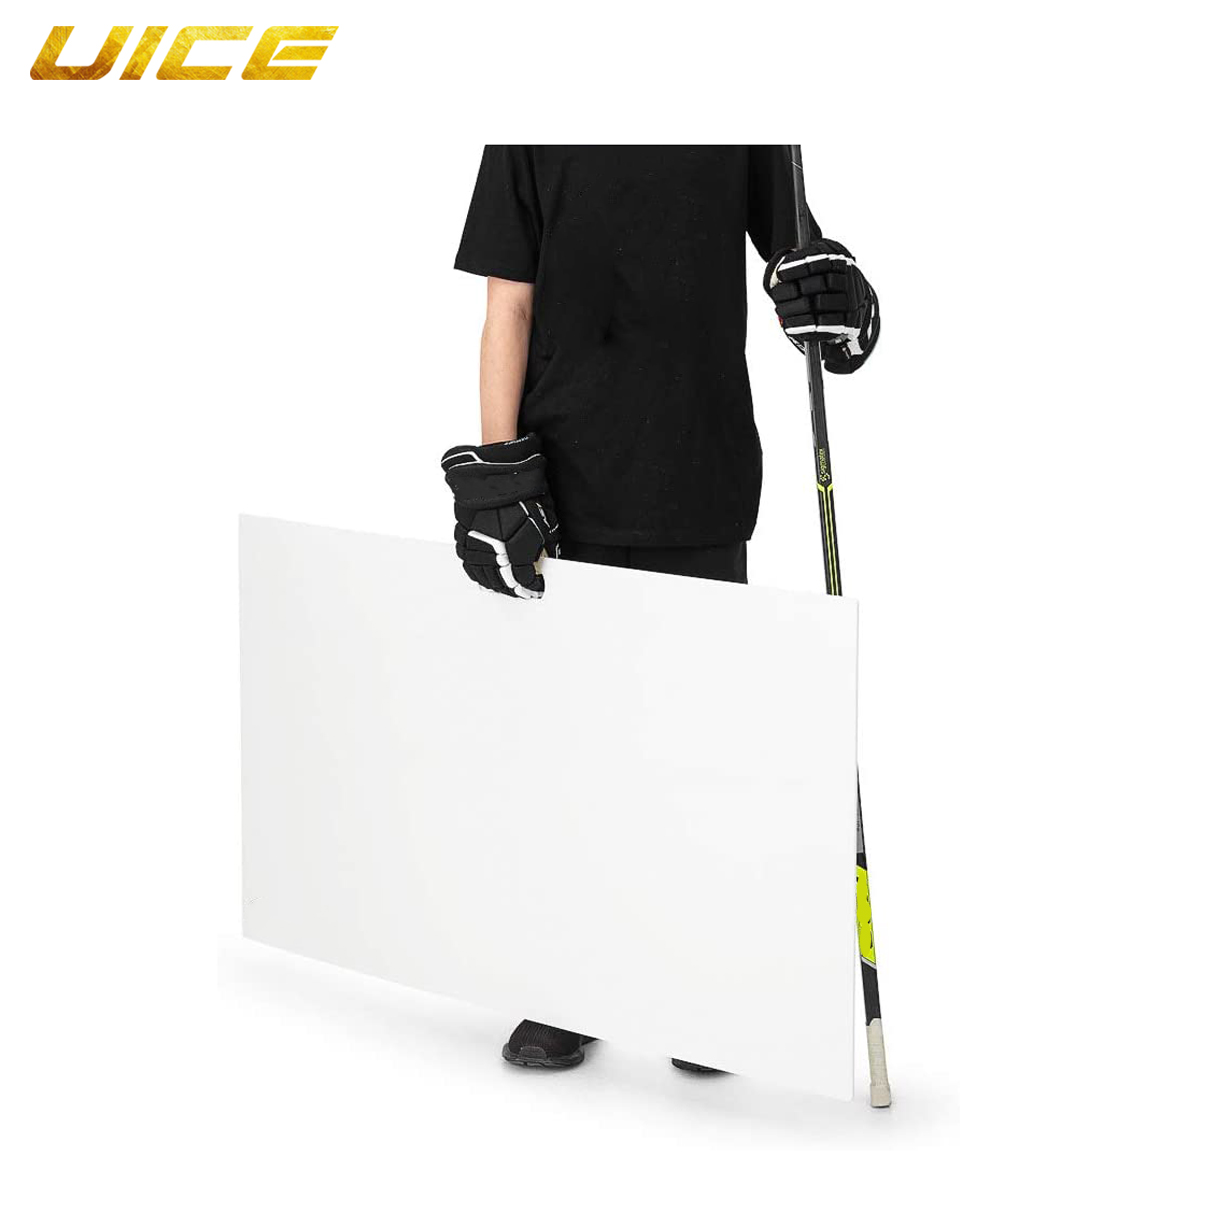 Ice Hockey Shooting Pad Simulates The Feel of Real Ice Professional-Grade Practice Surface for Shooting Passing Stickhandling